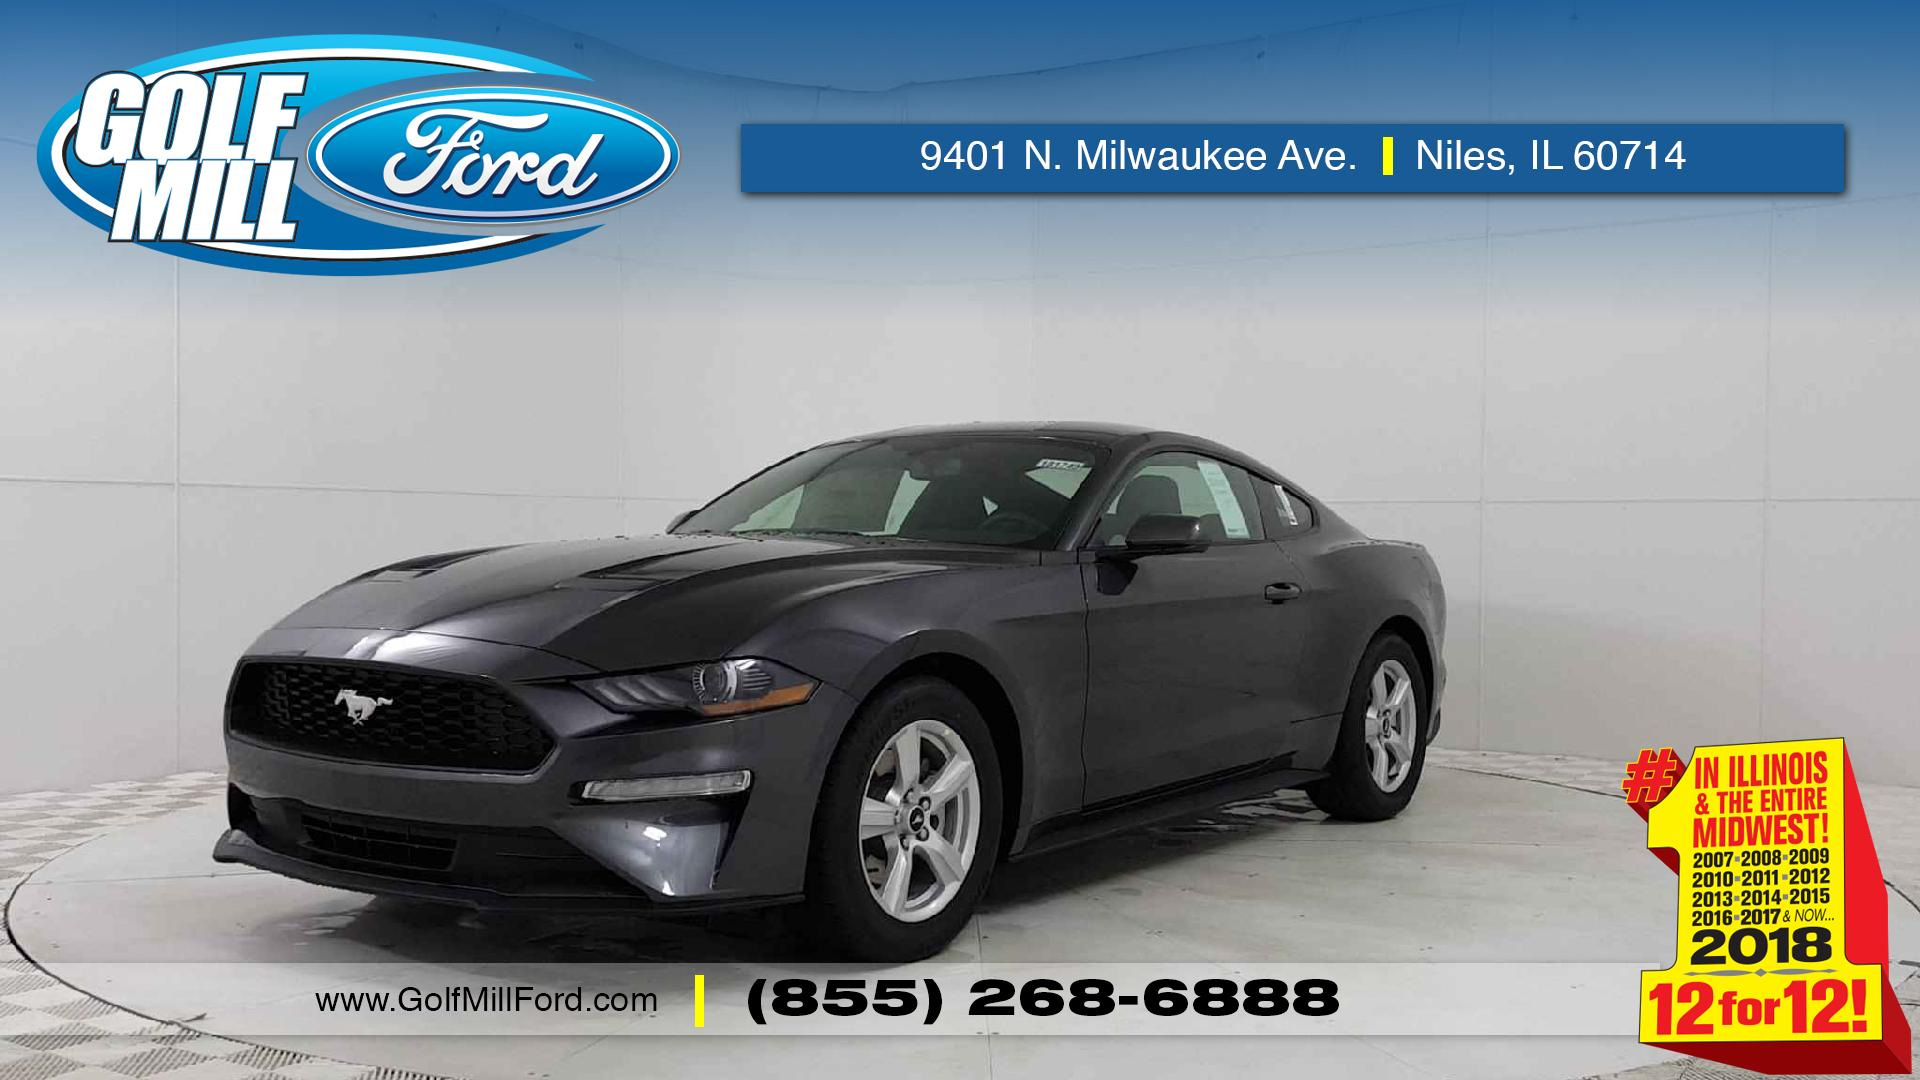 New Mustang for Sale at Golf Mill Ford in Niles IL Golf Mill Ford